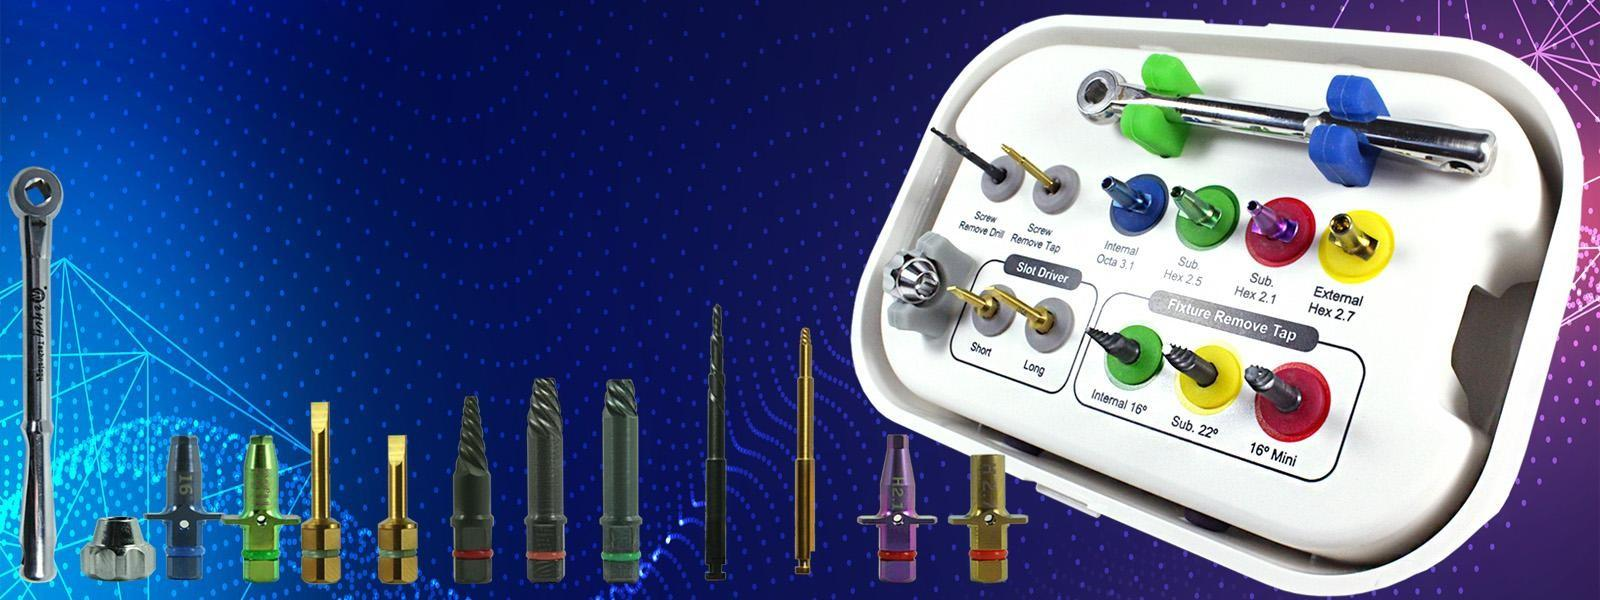 New Generation All-in-One Implant and Screw Extraction Kit Compatible with all major implant systemsSee more...